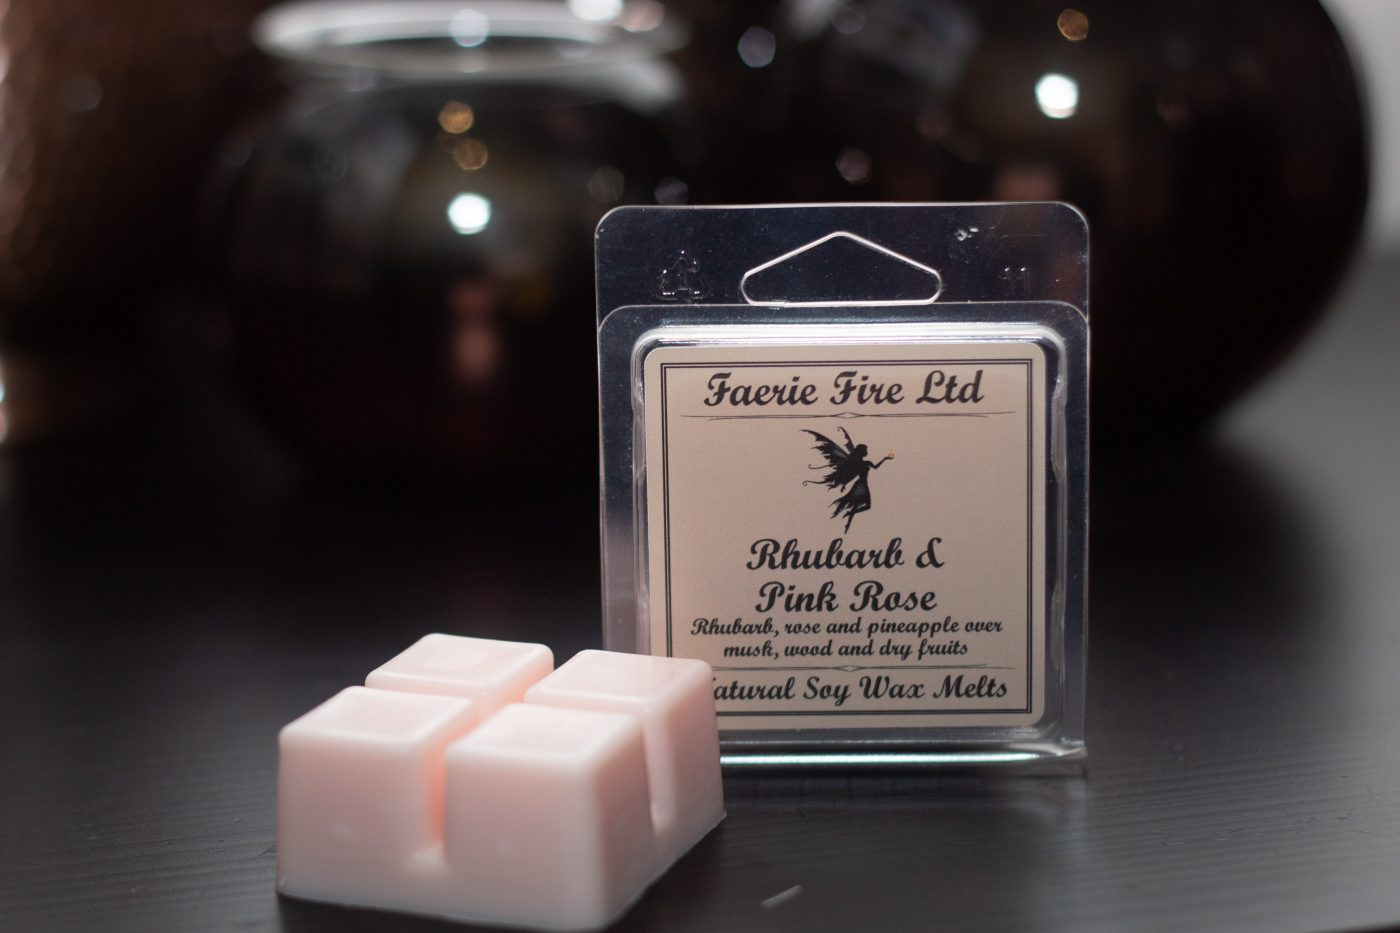 Rhubarb and Pink Rose Wax Melt Clam Shell Small scaled